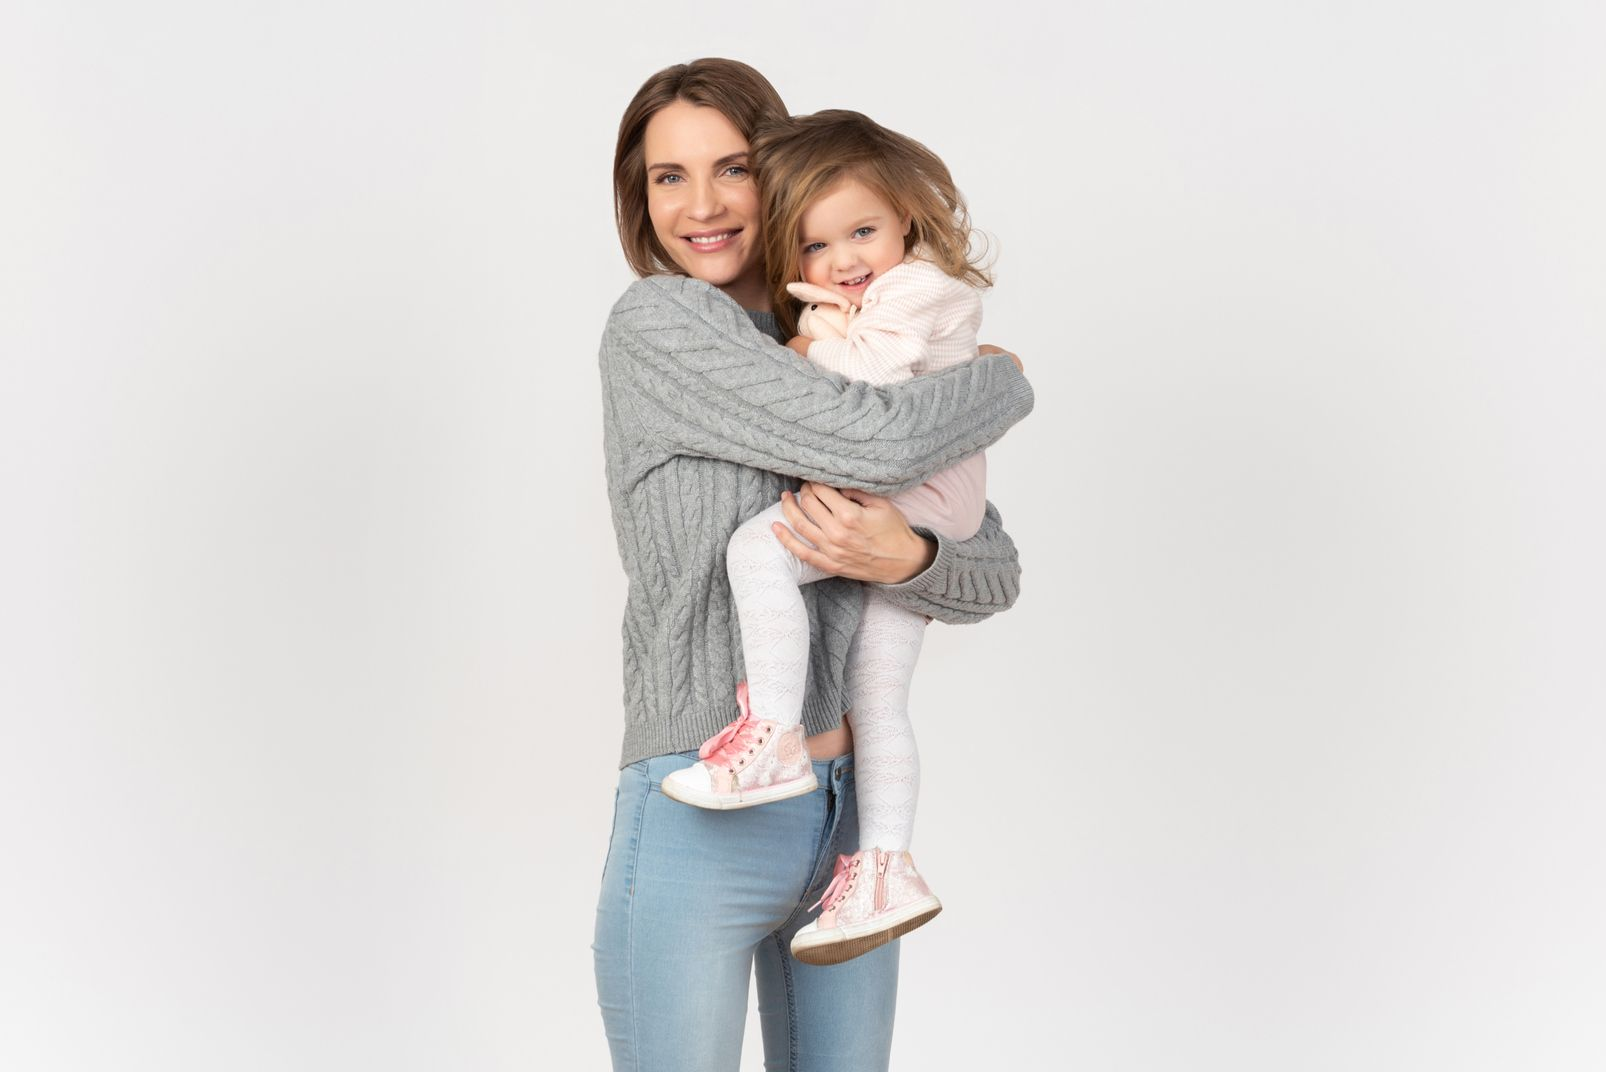 mom holds little daughter in her arms on gray background